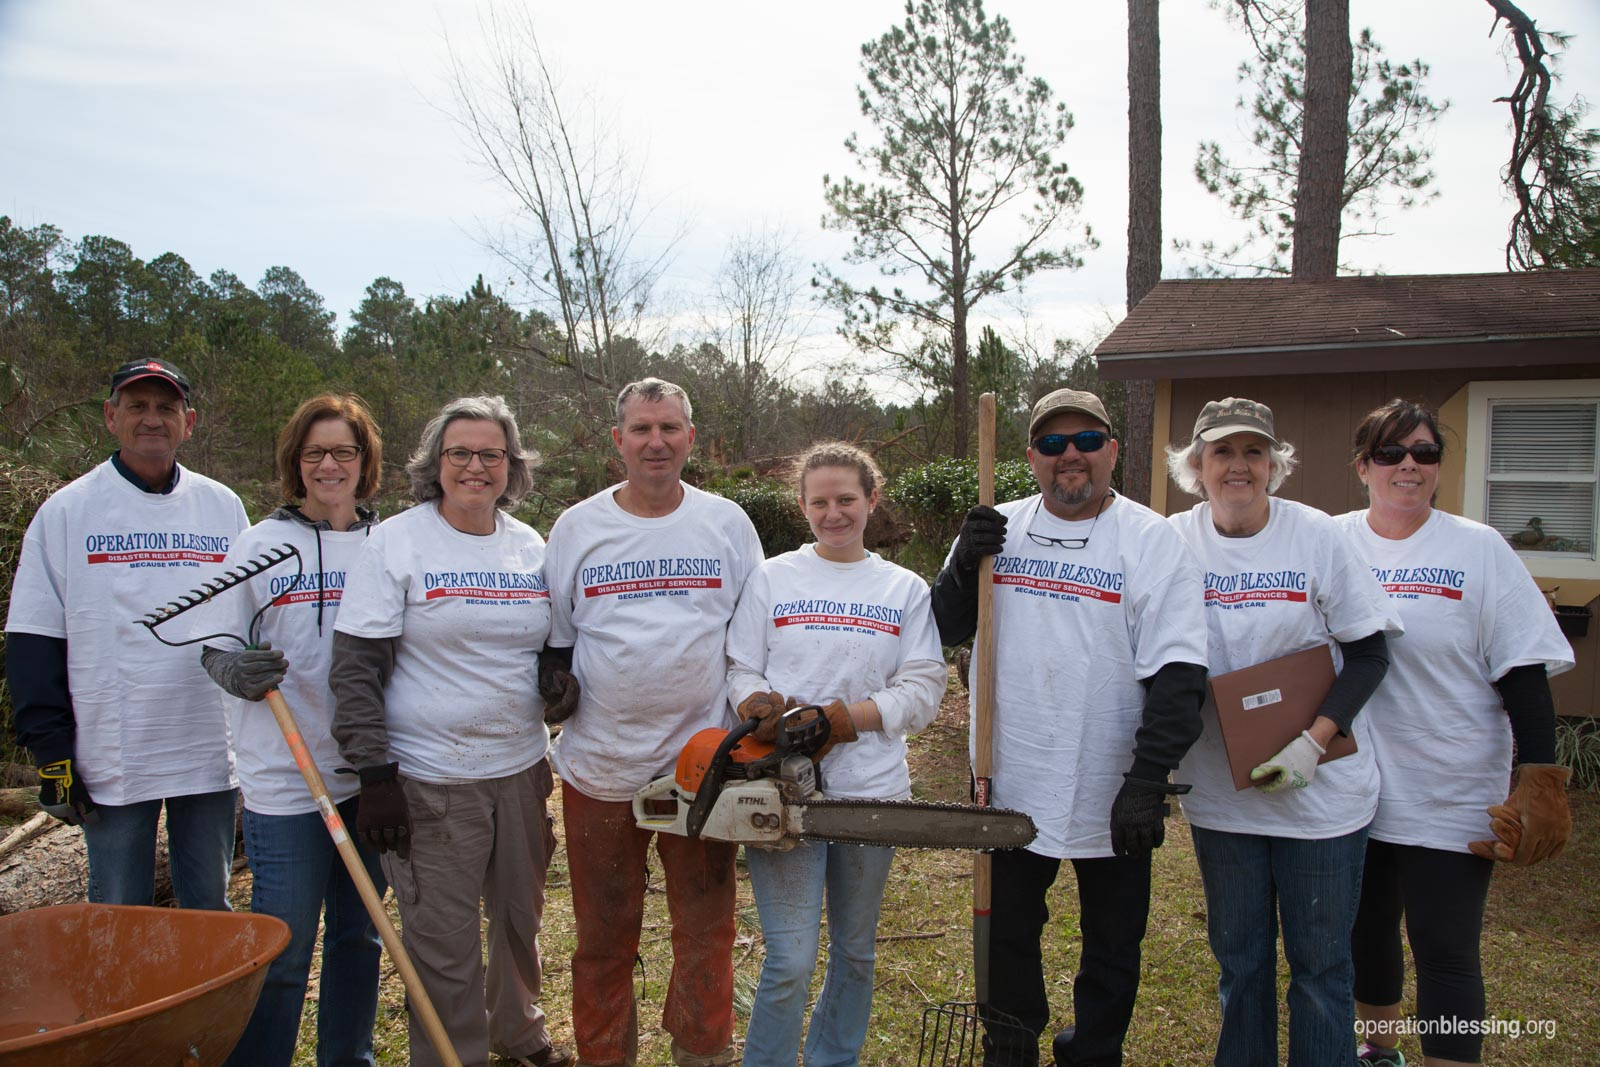 April Happenings kicks off as Operation Blessing volunteers gather to help residents in Albany, Georgia after a powerful EF3 tornado struck.